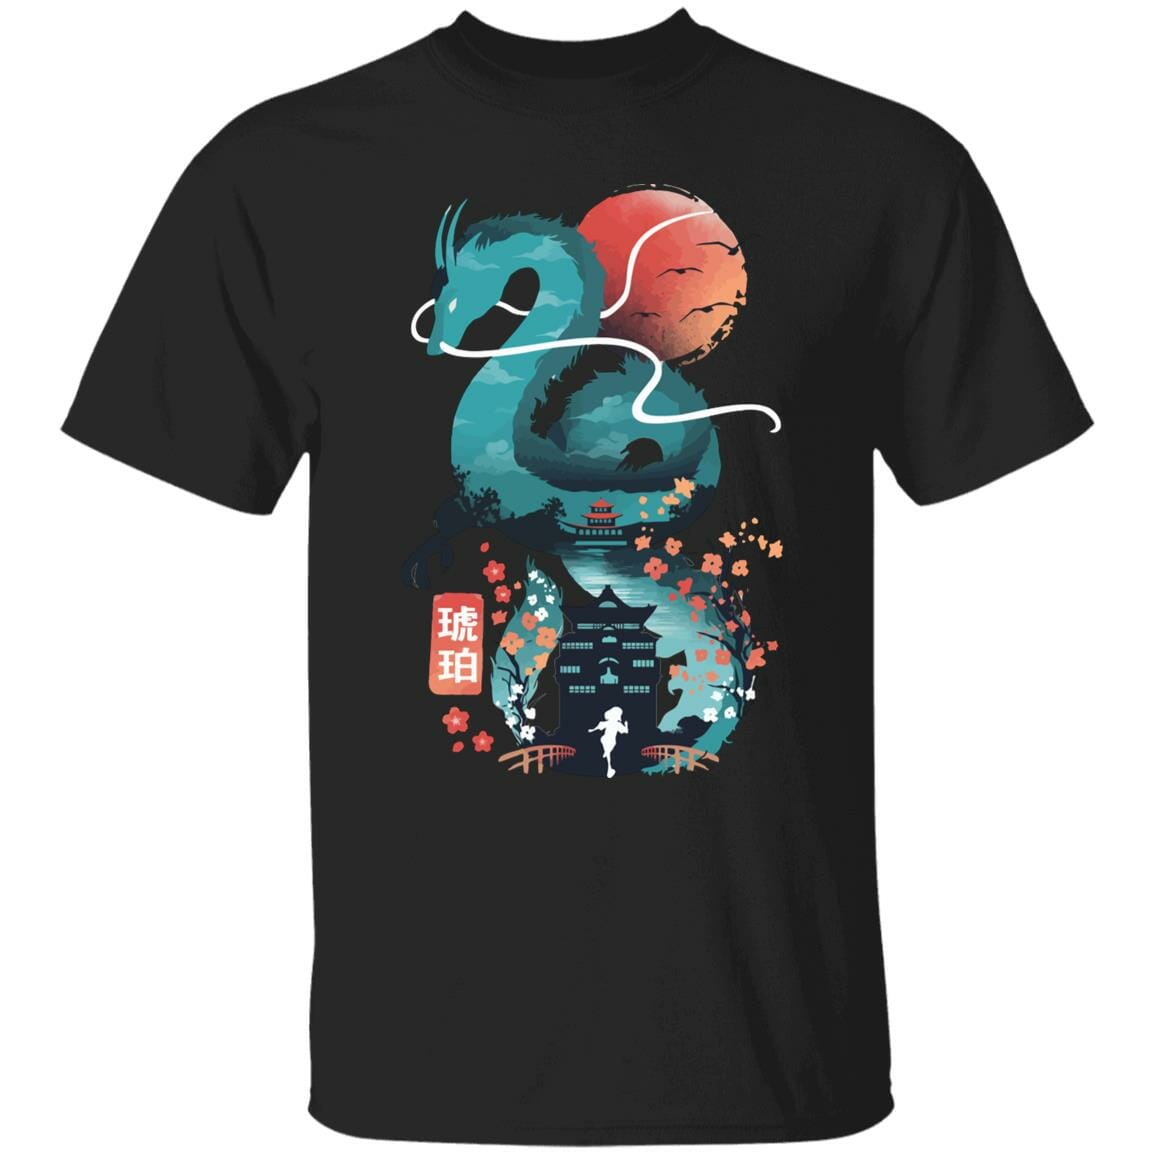 Spirited Away – Haku Dragon and The Bathhouse Classic T Shirt